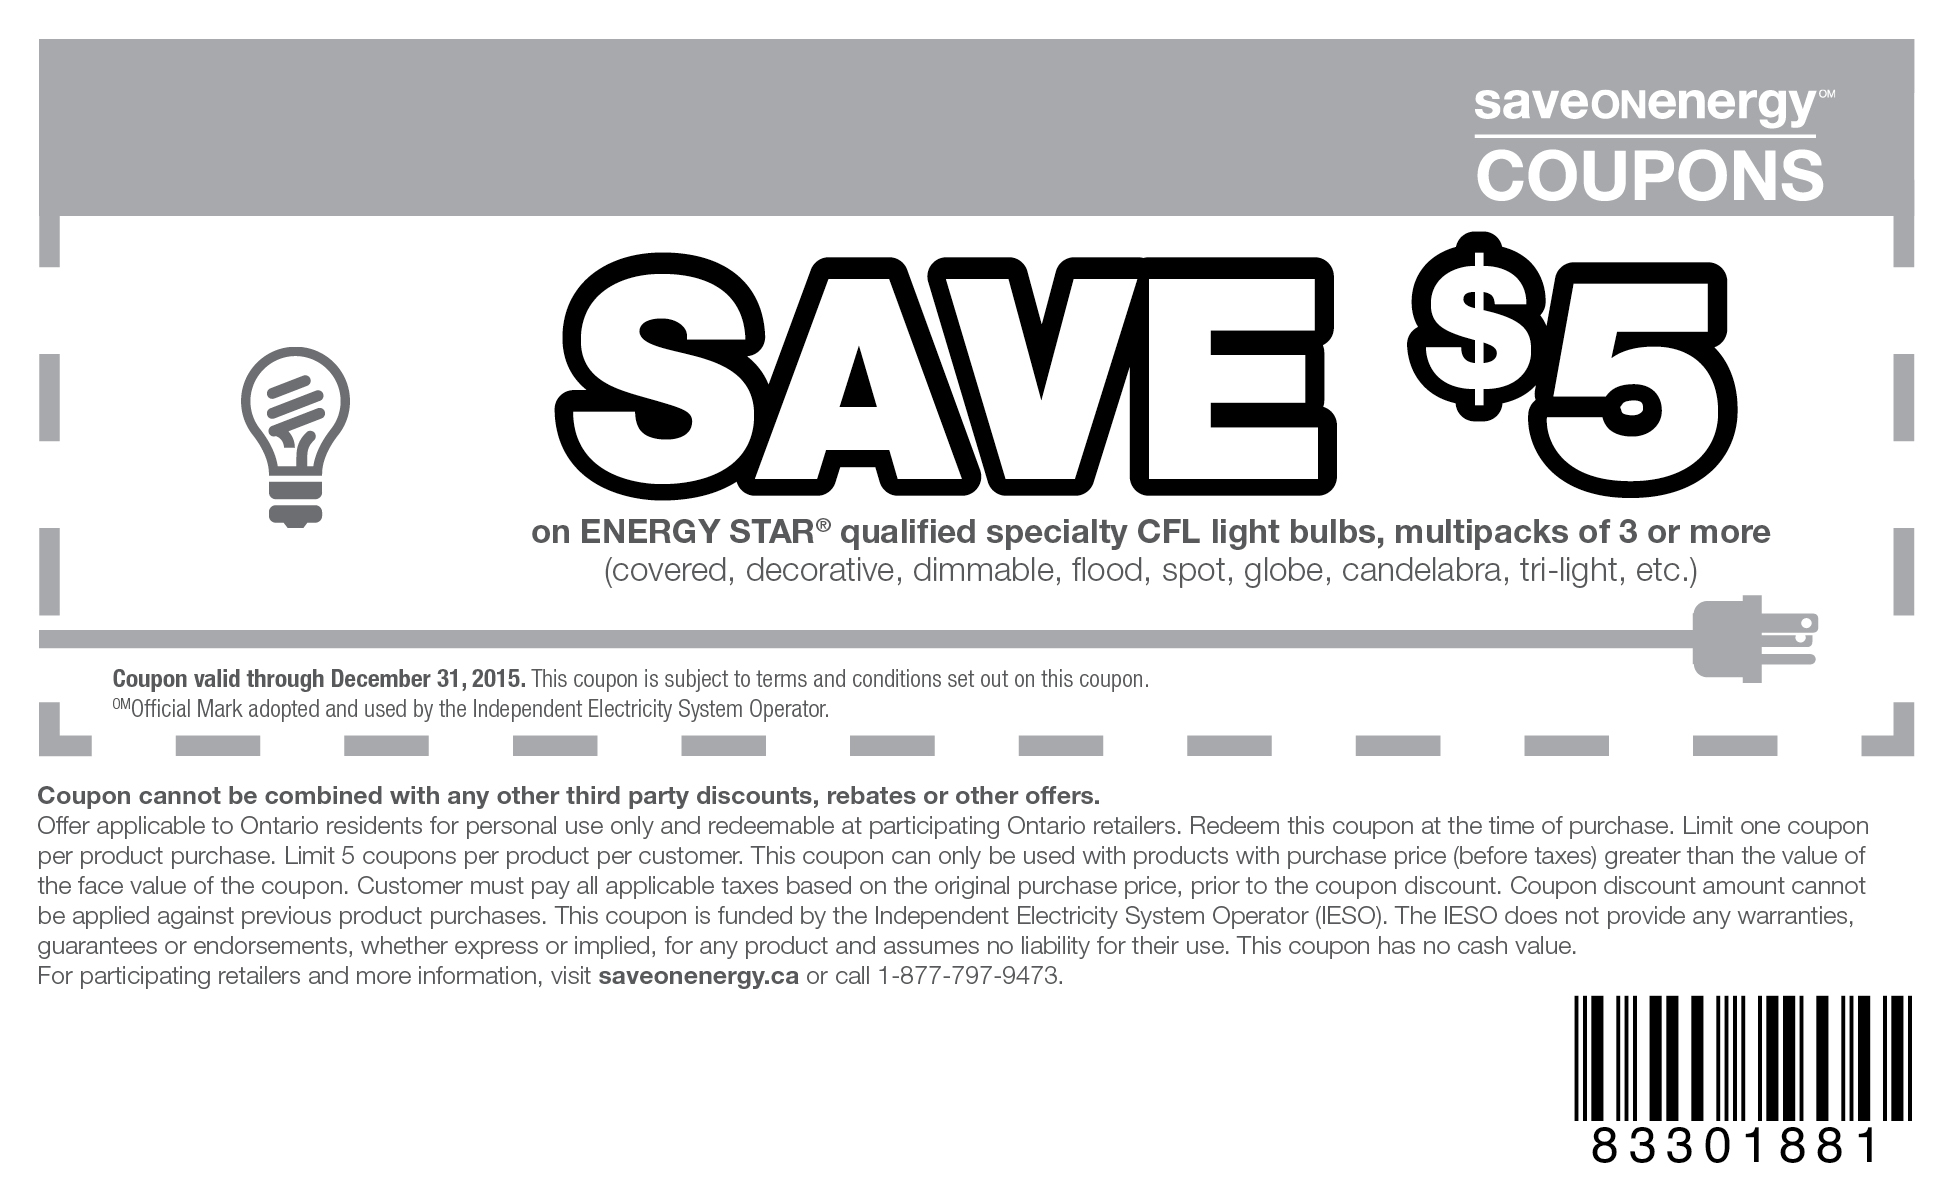 Saveonenergy Coupons Cfl Bulb Multipacks Coupon Erth Power